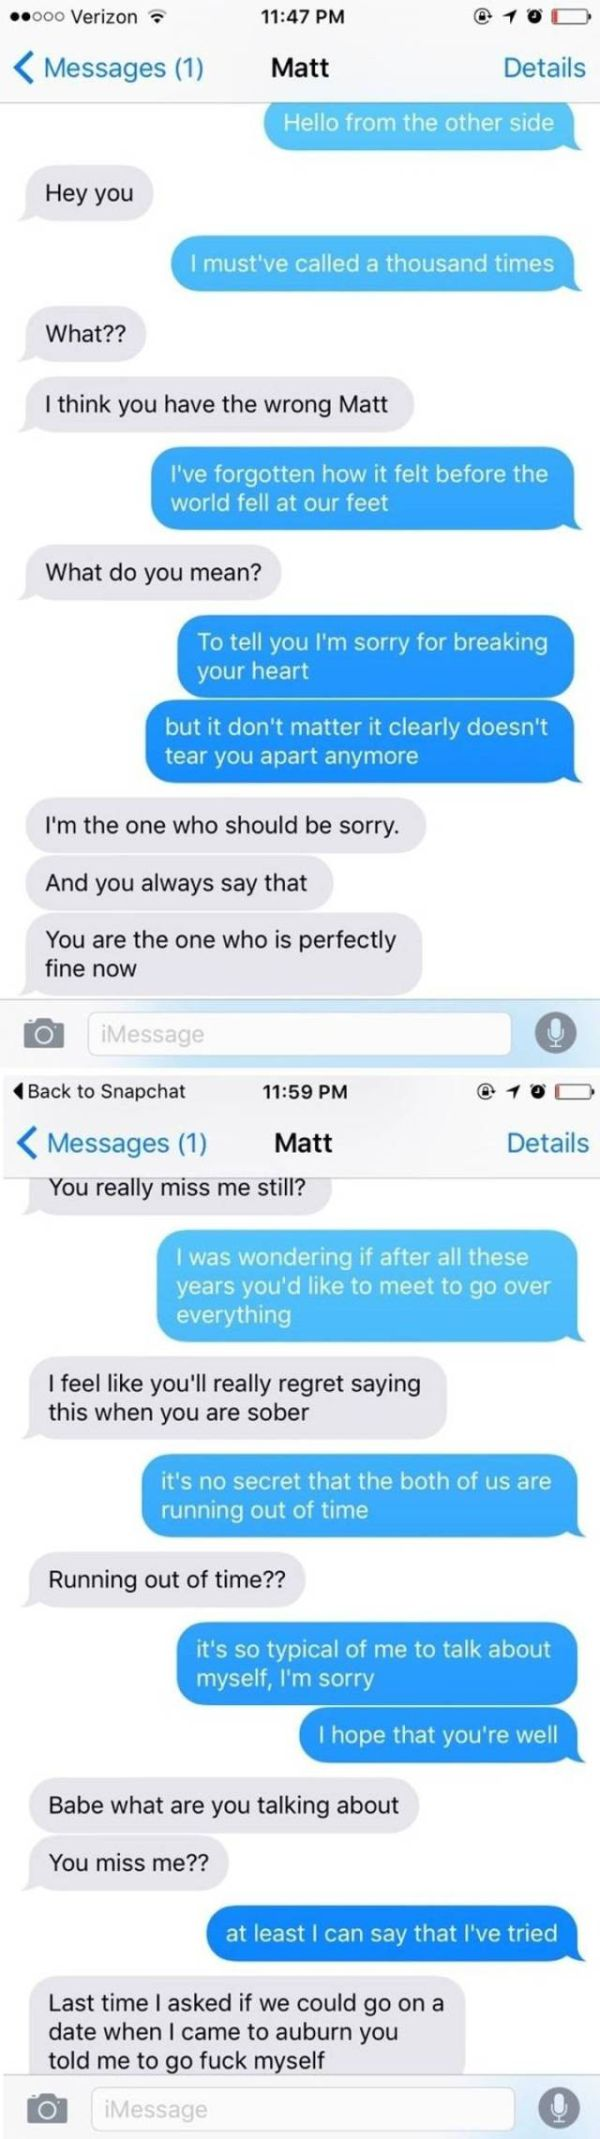 Scorned Lovers Who Got Revenge On Their Exes By Trolling Them (36 pics)